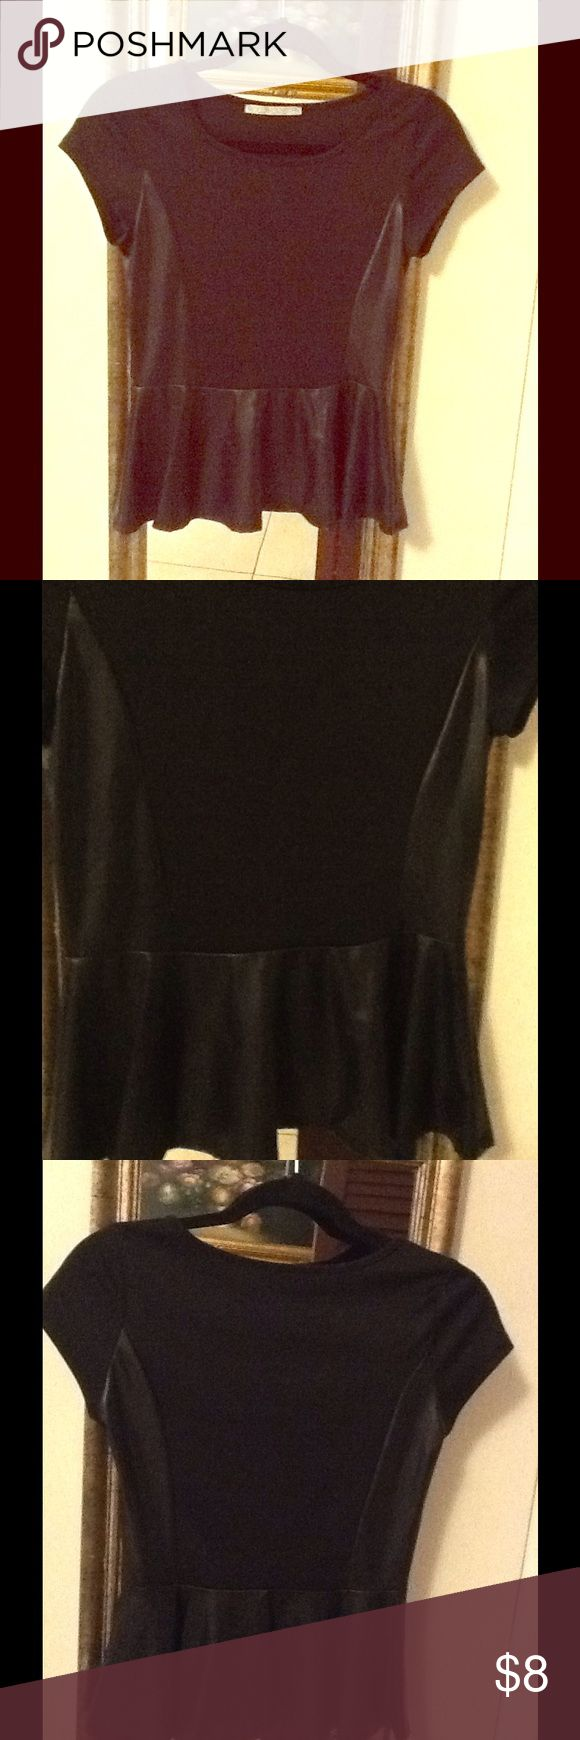 Black short sleeve stretch faux leather peplum top Black short sleeve stretch faux leather peplum top. Polyester stretch. In great condition. Worn once. Thanks ♥️ Tops